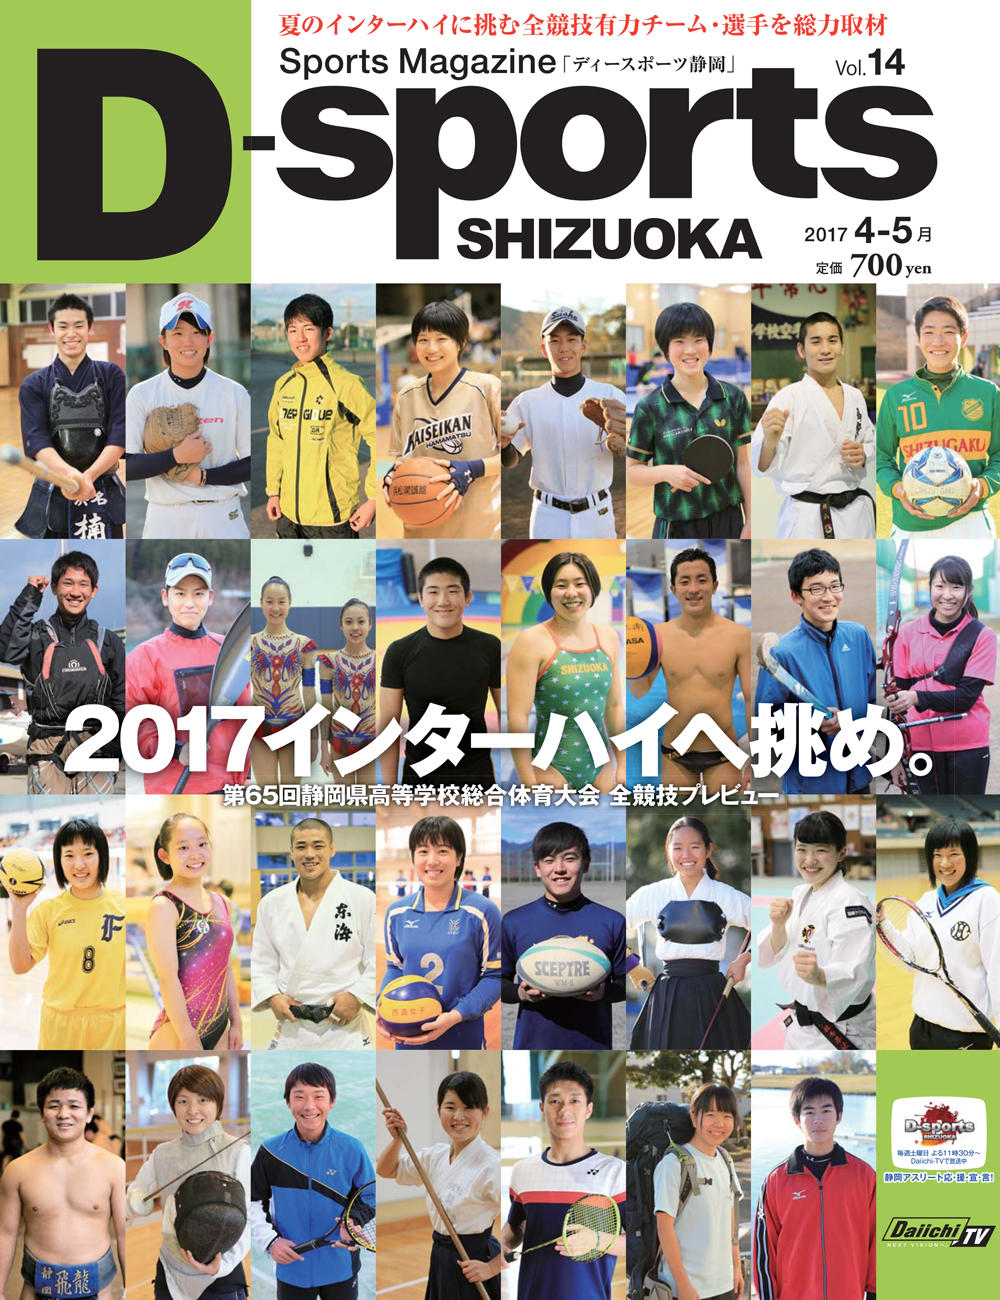 http://d-sports.shizuokastandard.jp/article/2017/h1.jpg